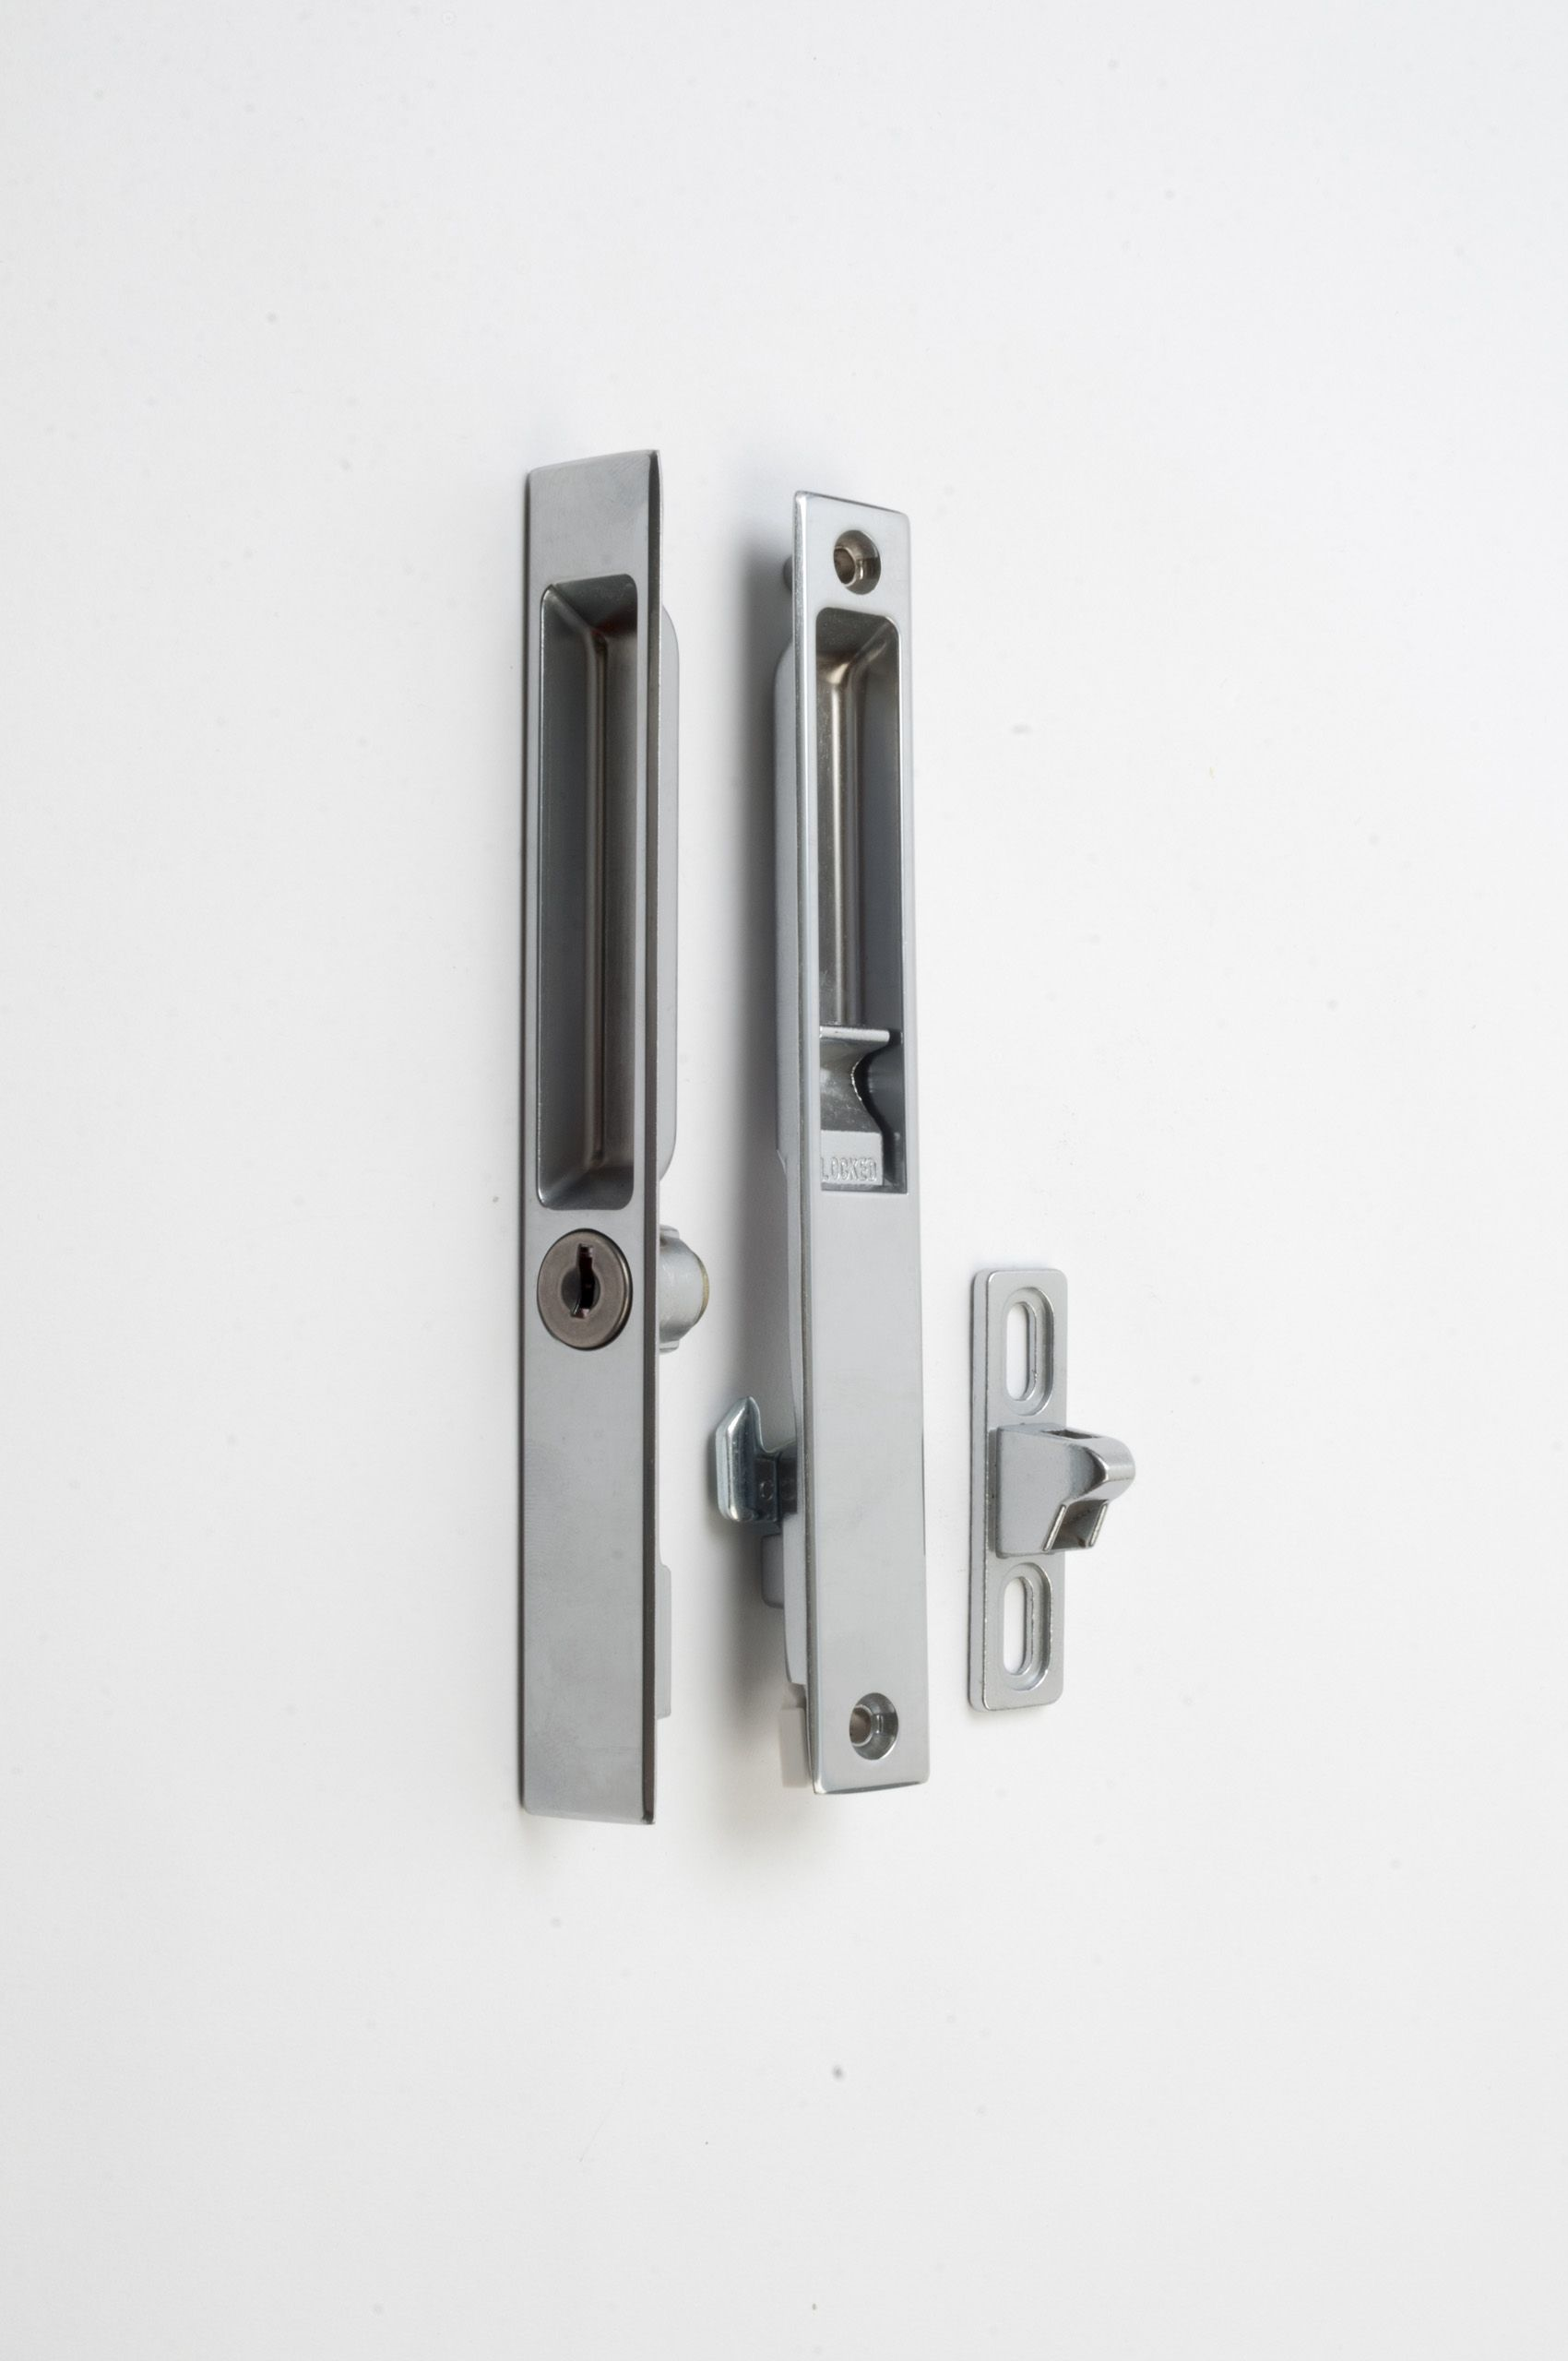 Crl Secondary Security Lock For Inside Sliding Patio Doors